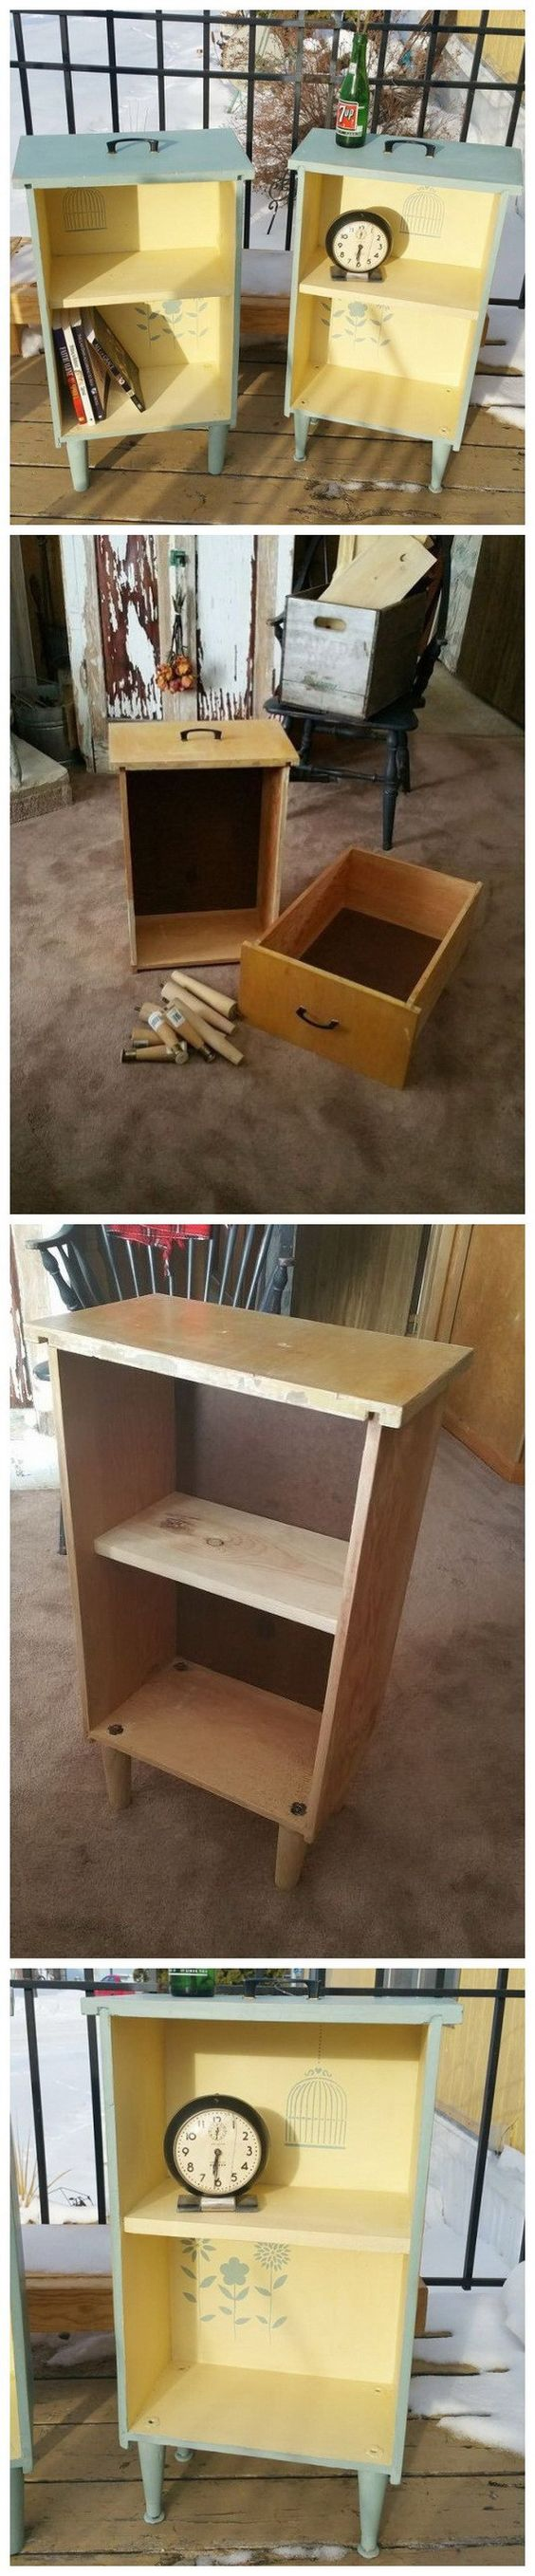 Upcycled Drawers to Side Tables: Get some old drawers and turned them into bright side tables.